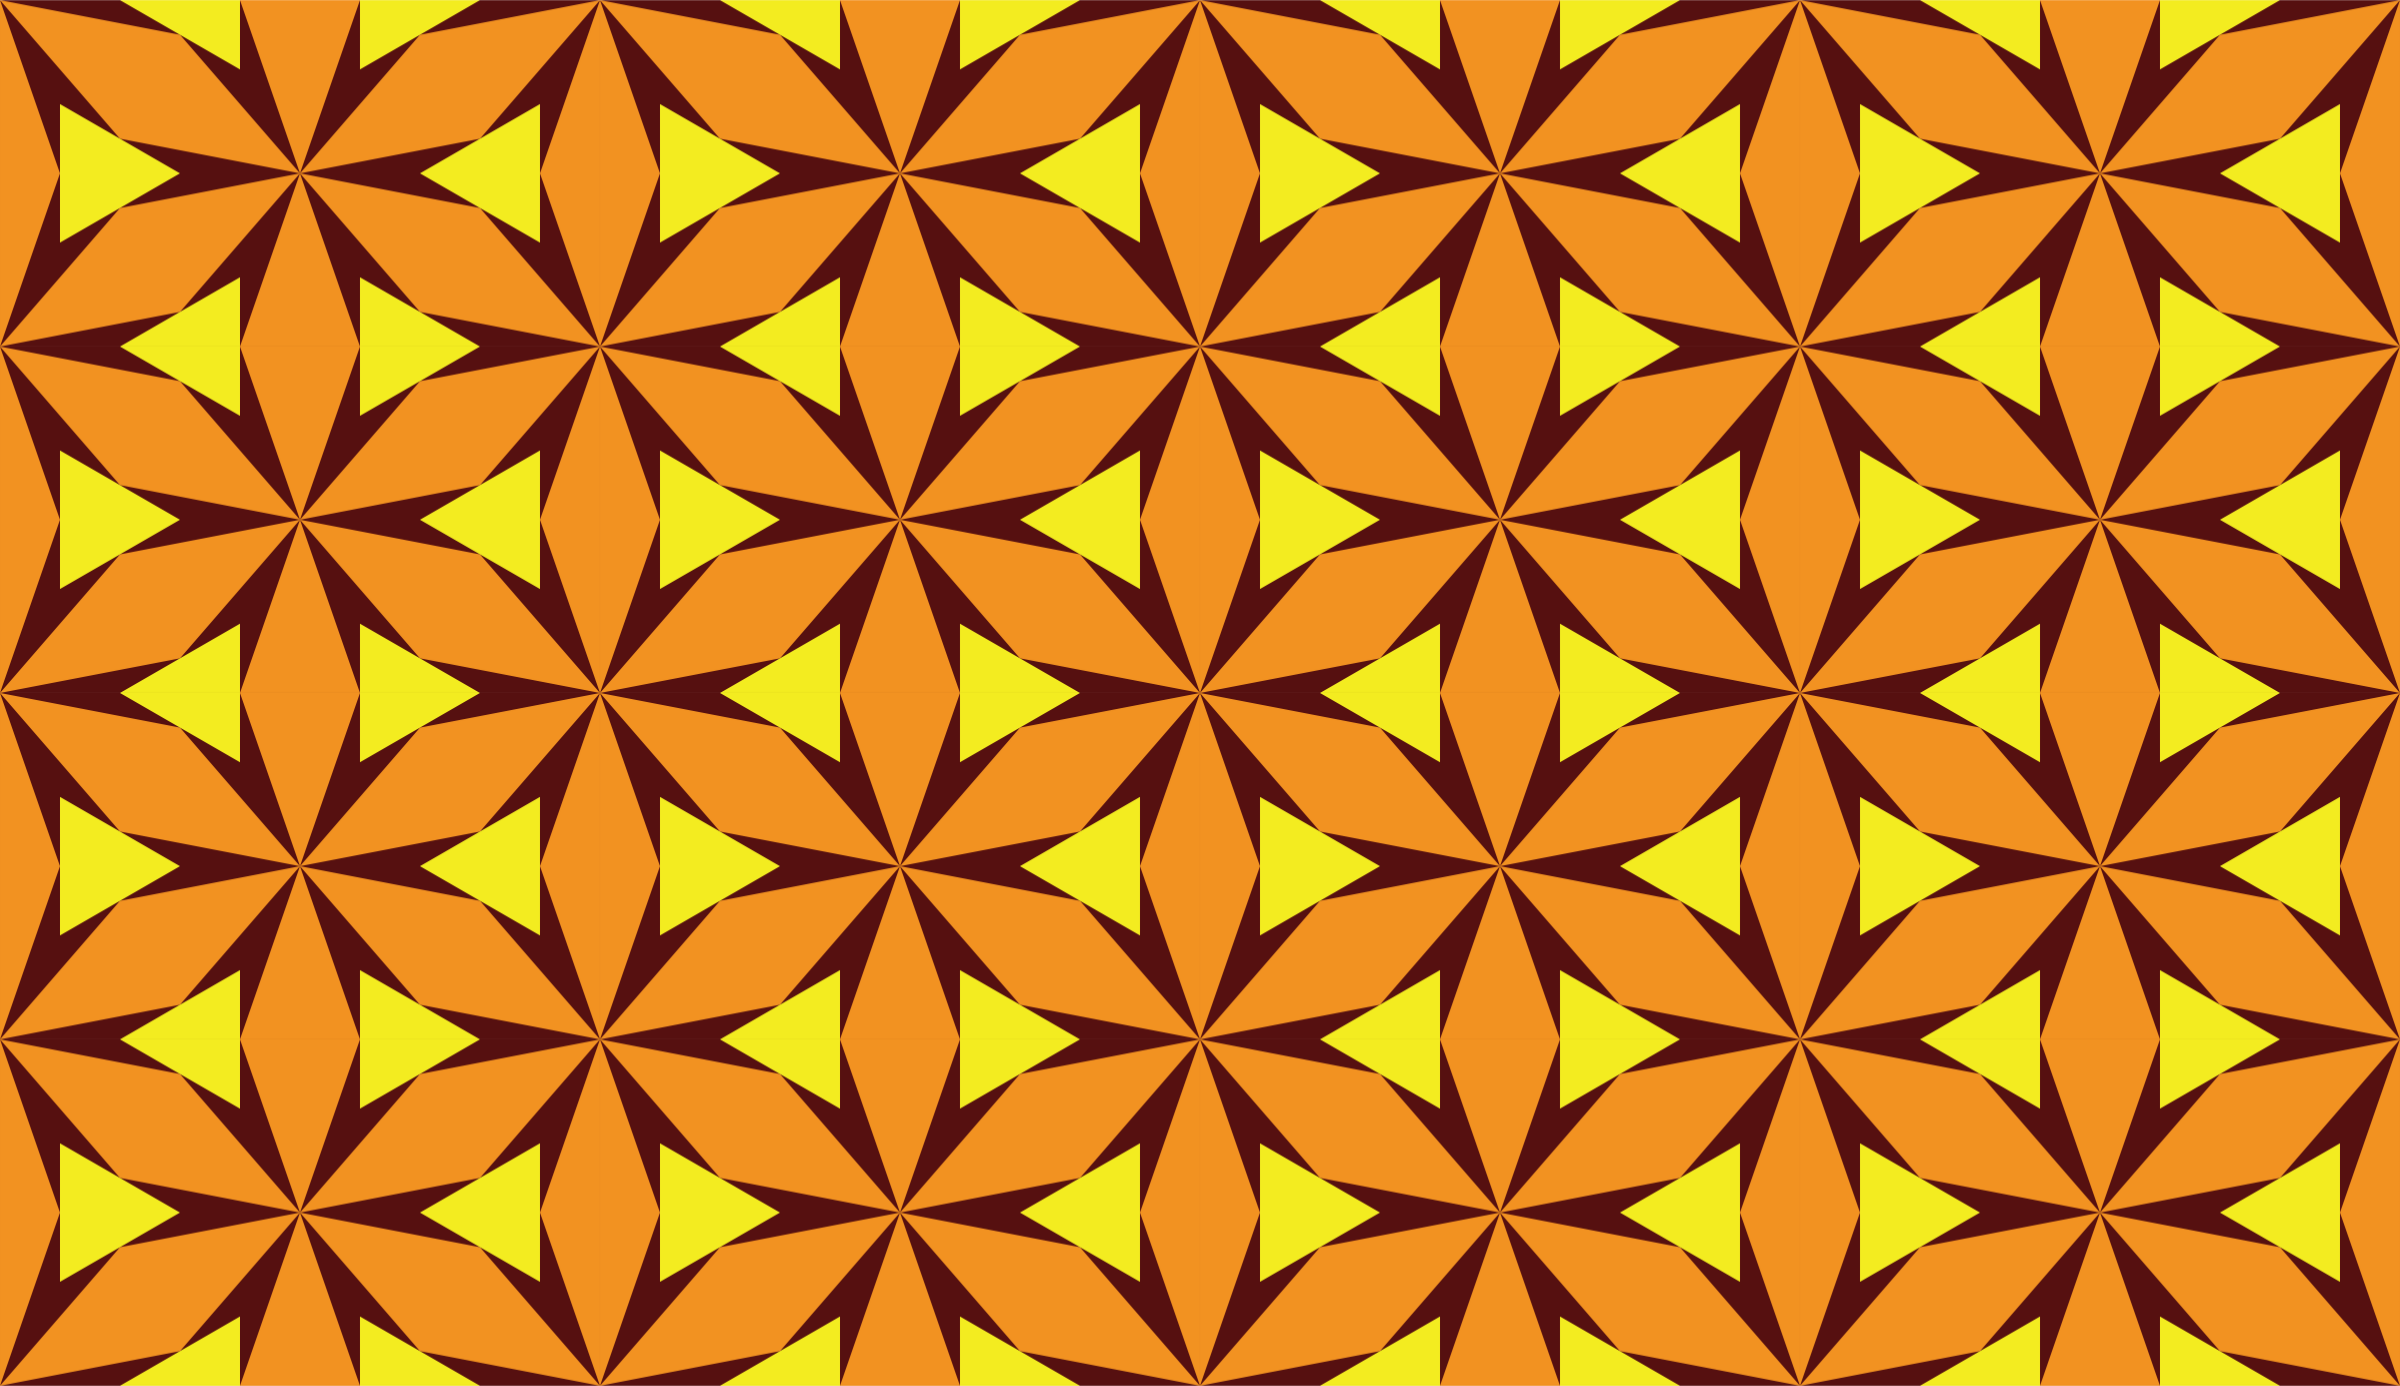 Tessellation 15 (colour 2) by Firkin